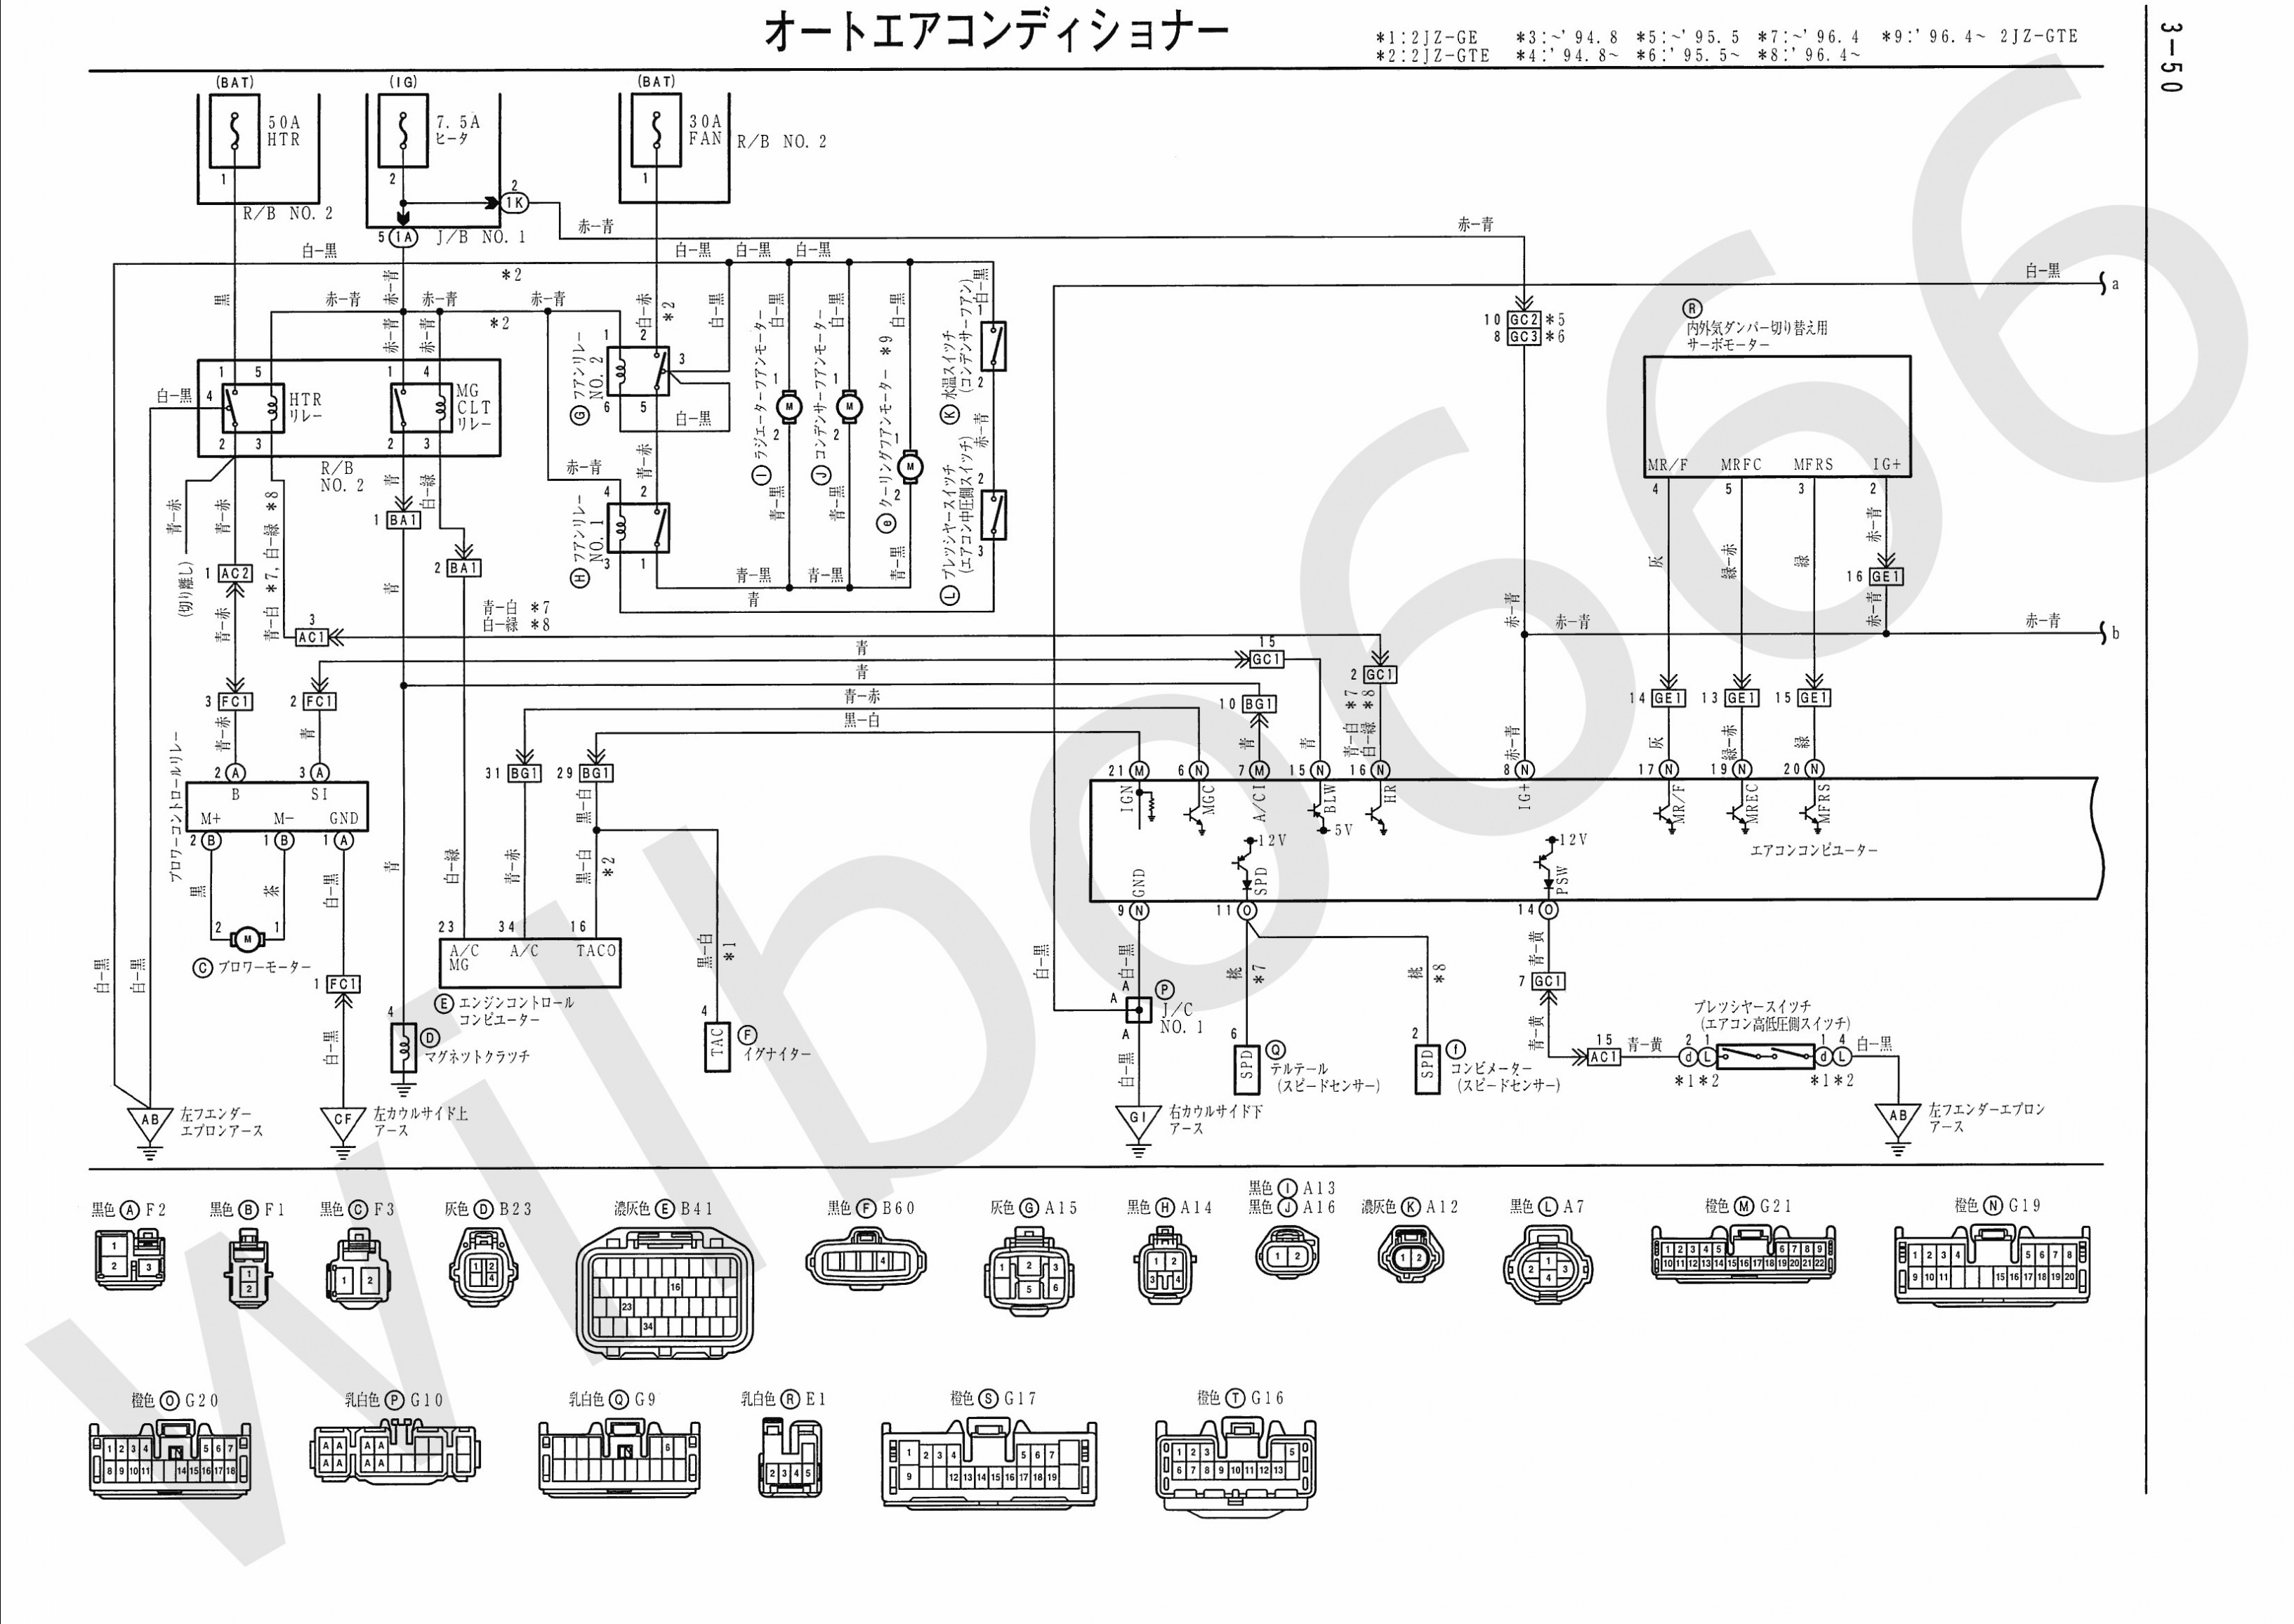 1998 Camry Engine Diagram Civic Layout Wiring Diagrams